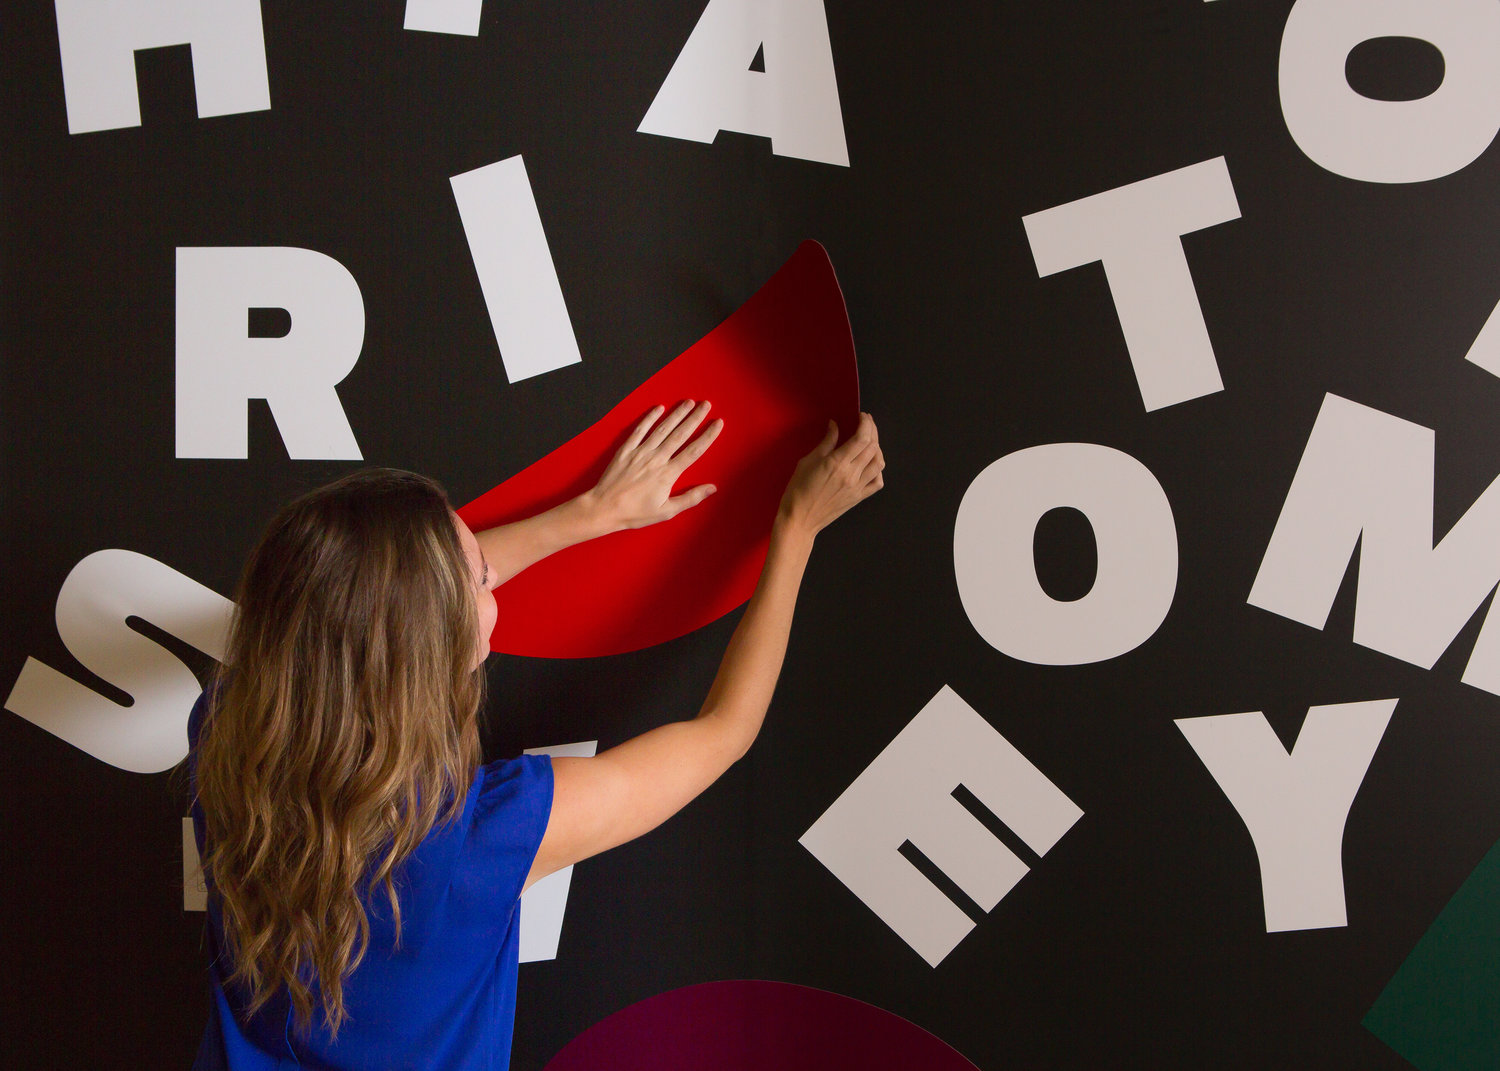 custom Interactive murals - We can help you create a custom interactive mural for your next event, or environmental activation.